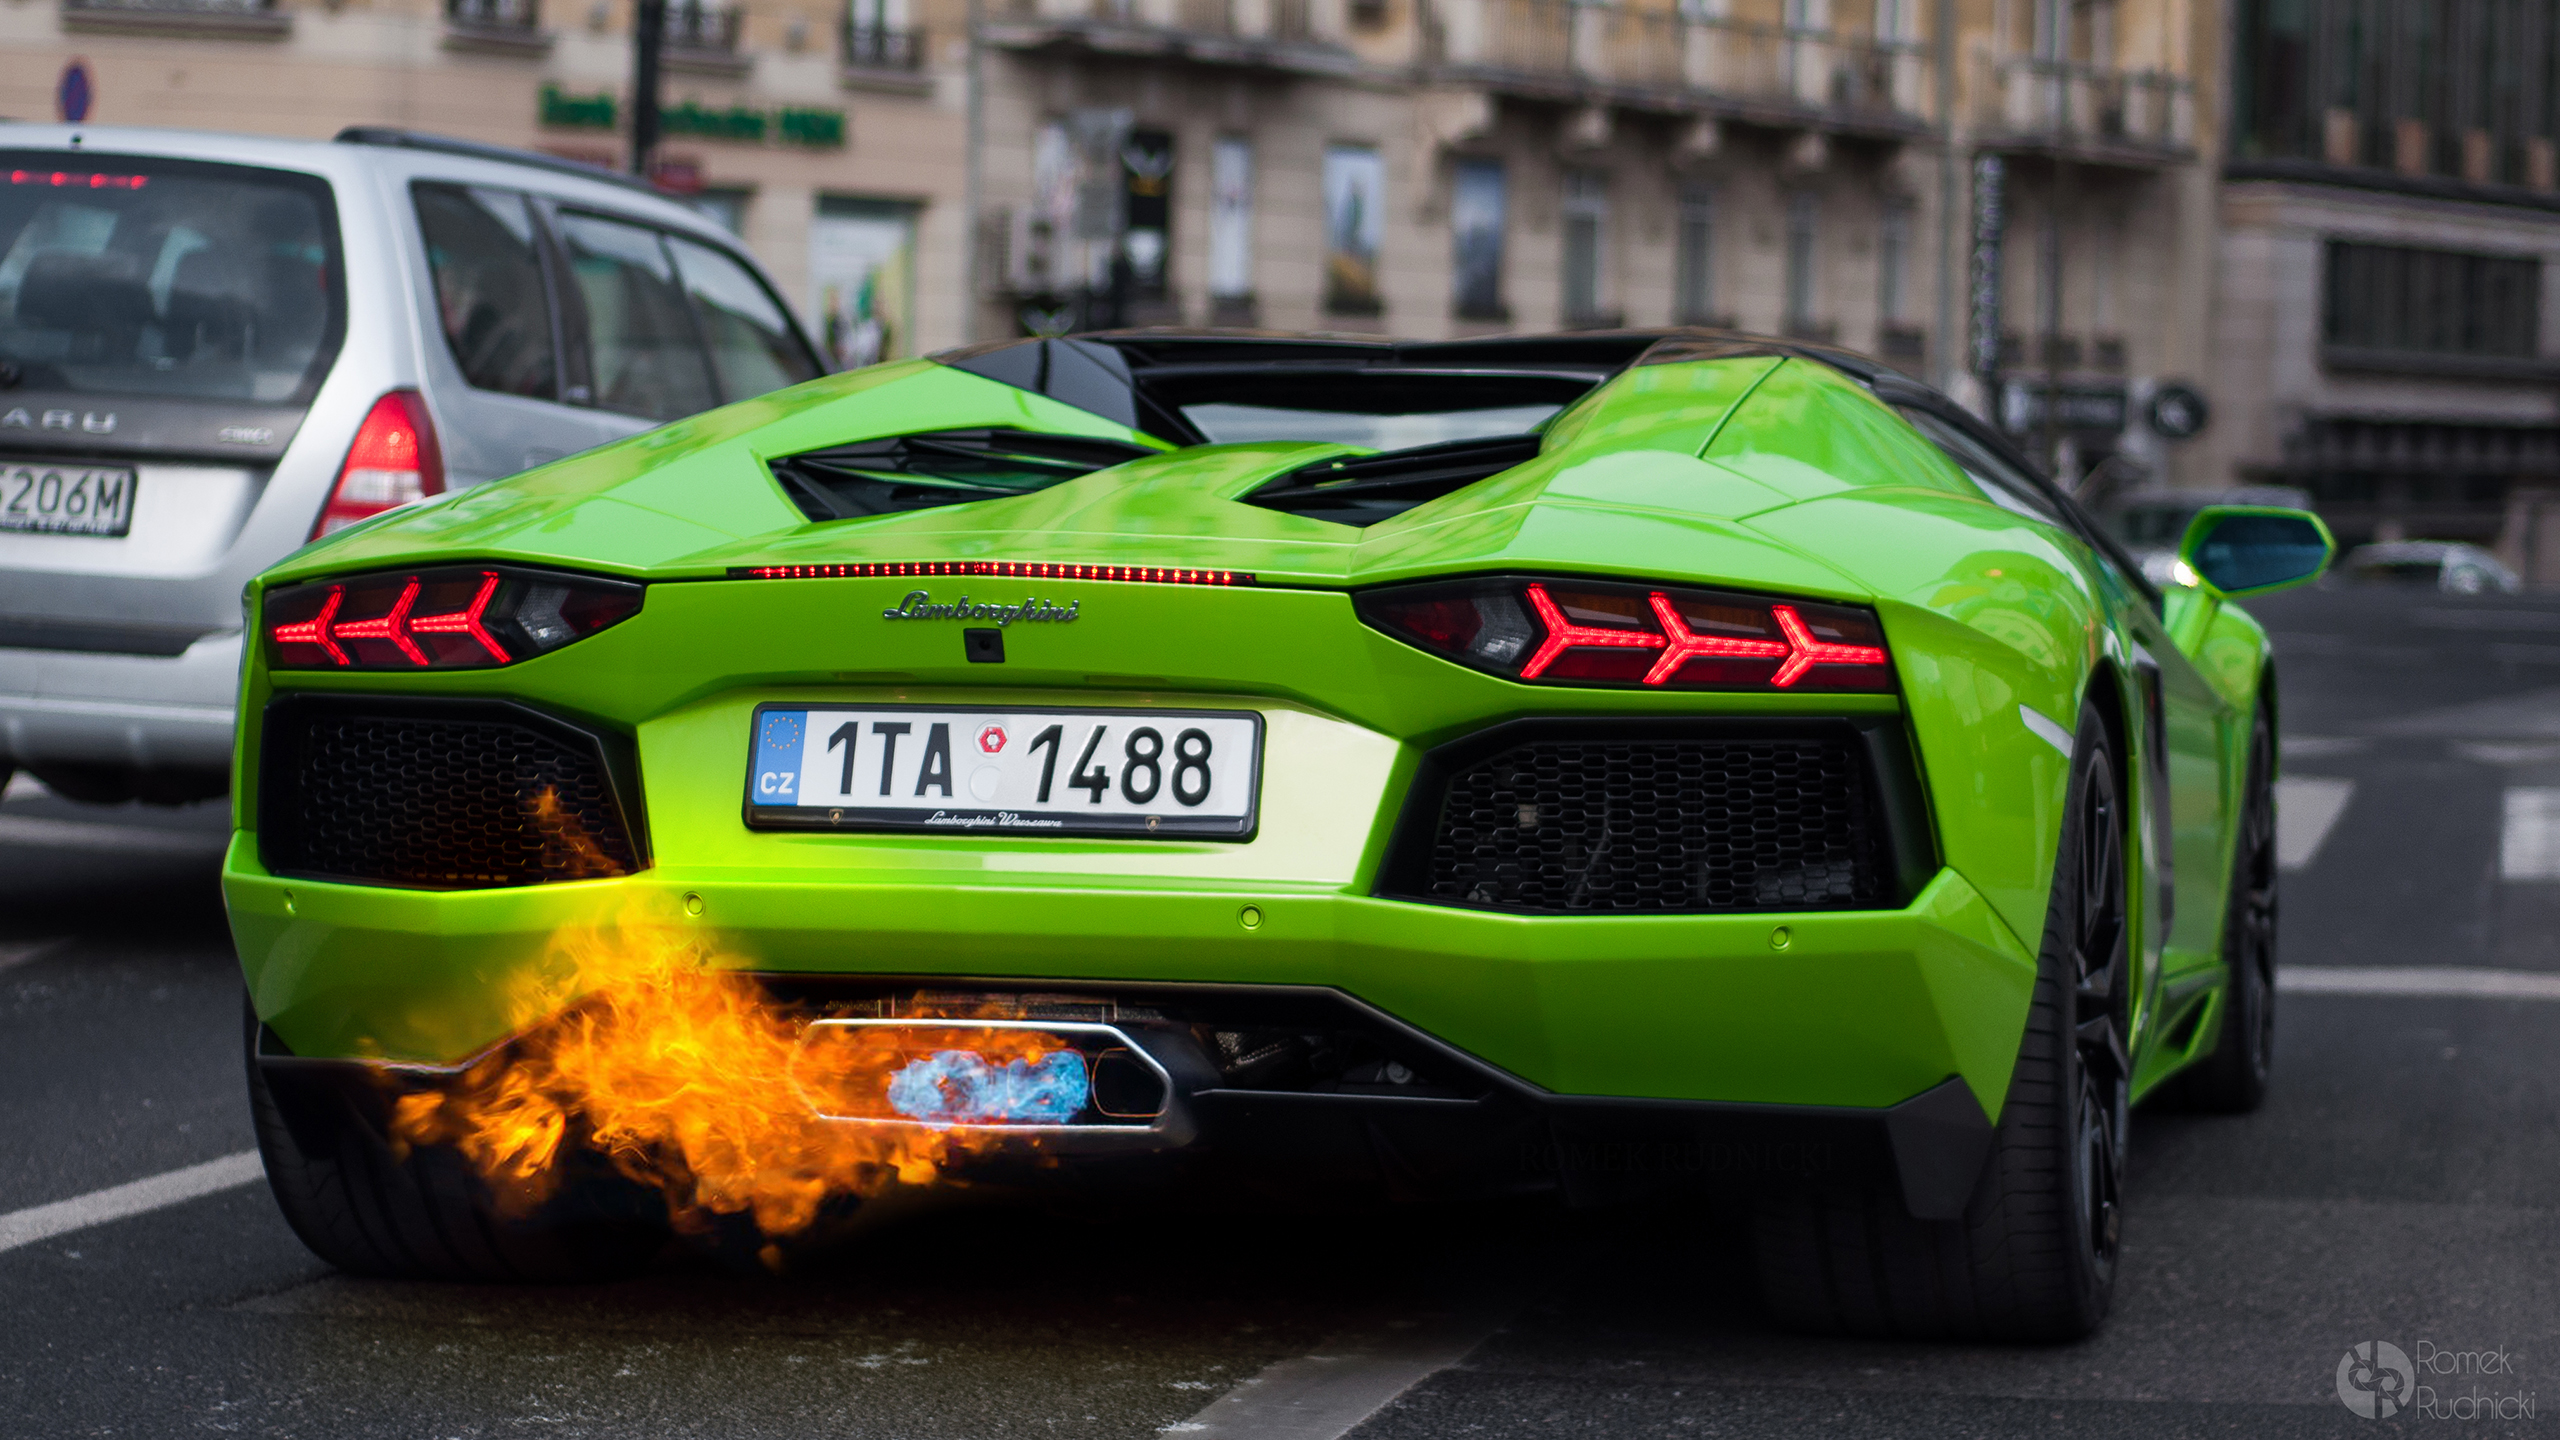 Some more backfire flames, you can never have enough. Photo: daily-backgrounds